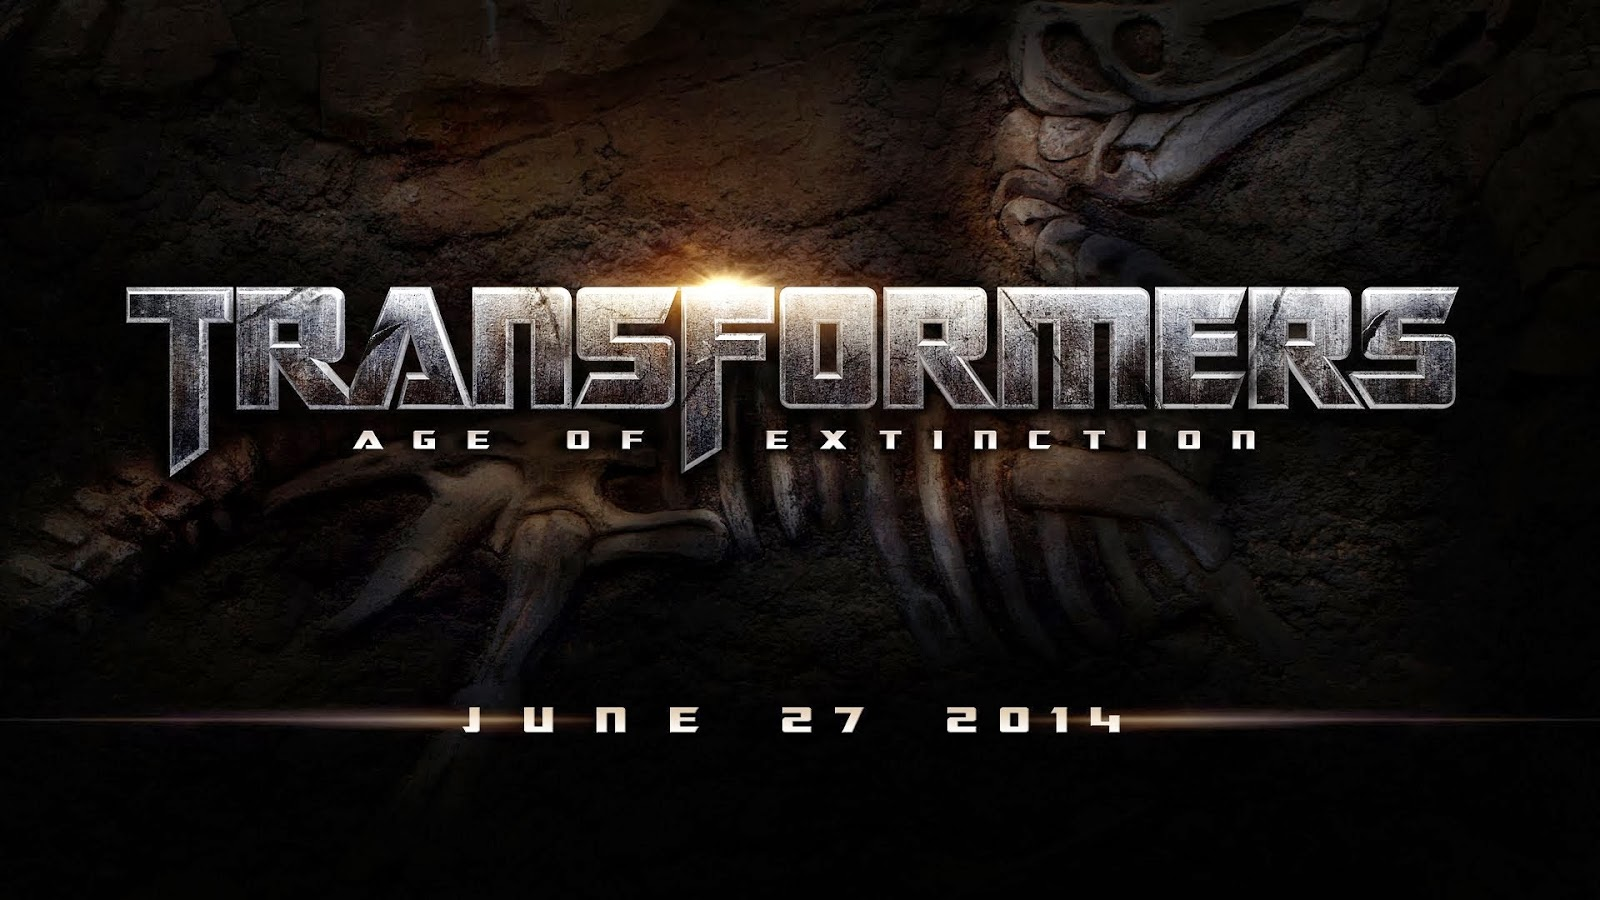 Watch the full trailer for Transformers: Age of Extinction (Transformers 4) June 27, 2014